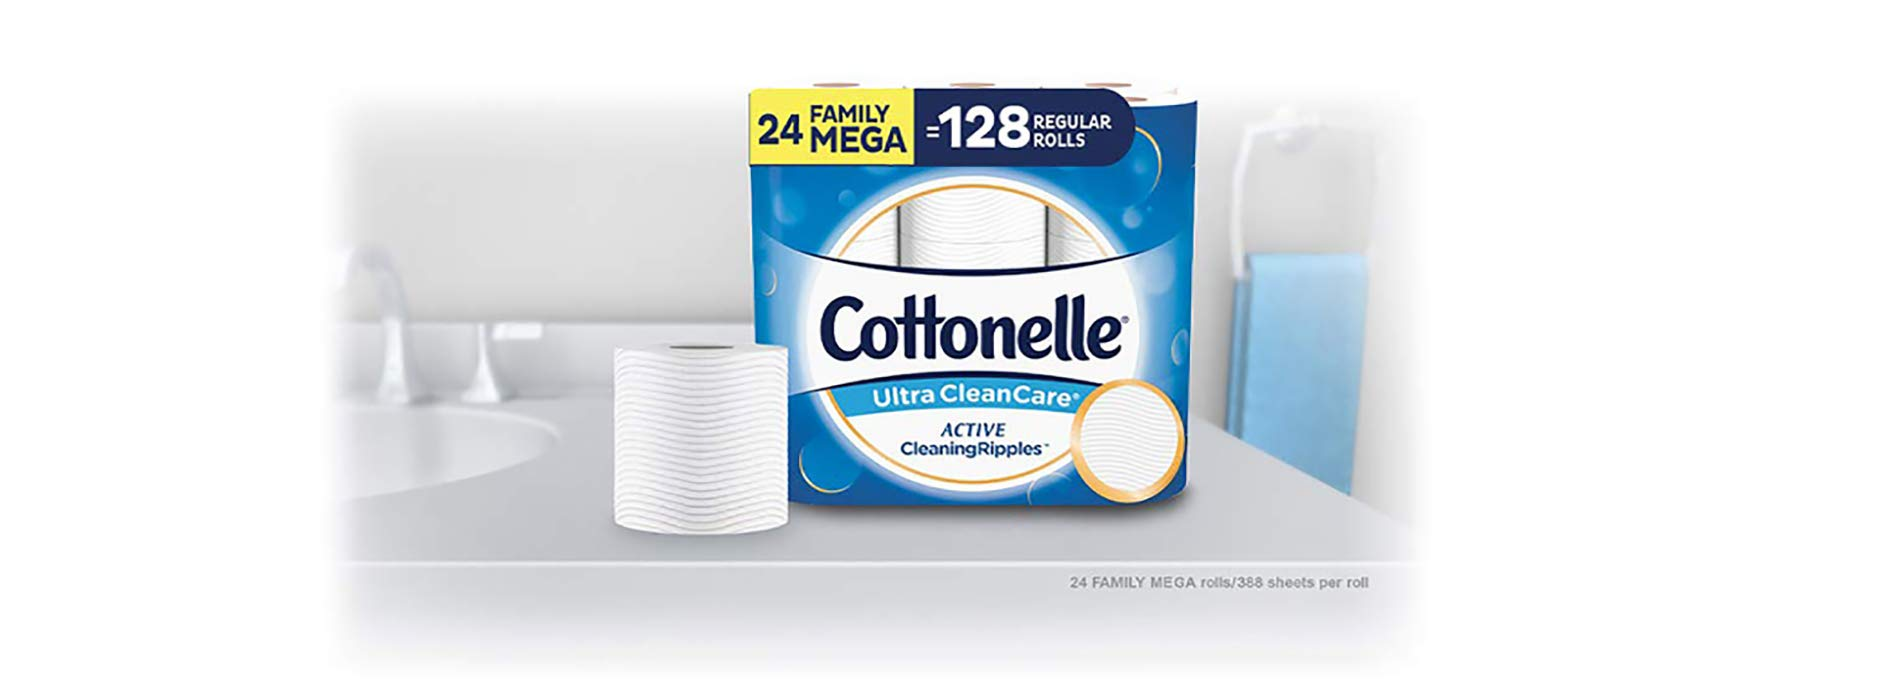 Cottonelle Ultra CleanCare Toilet Paper with Active CleaningRipples, Strong Biodegradable Bath Tissue, Septic-Safe, 24 Family Mega Rolls by Cottonelle (Image #2)